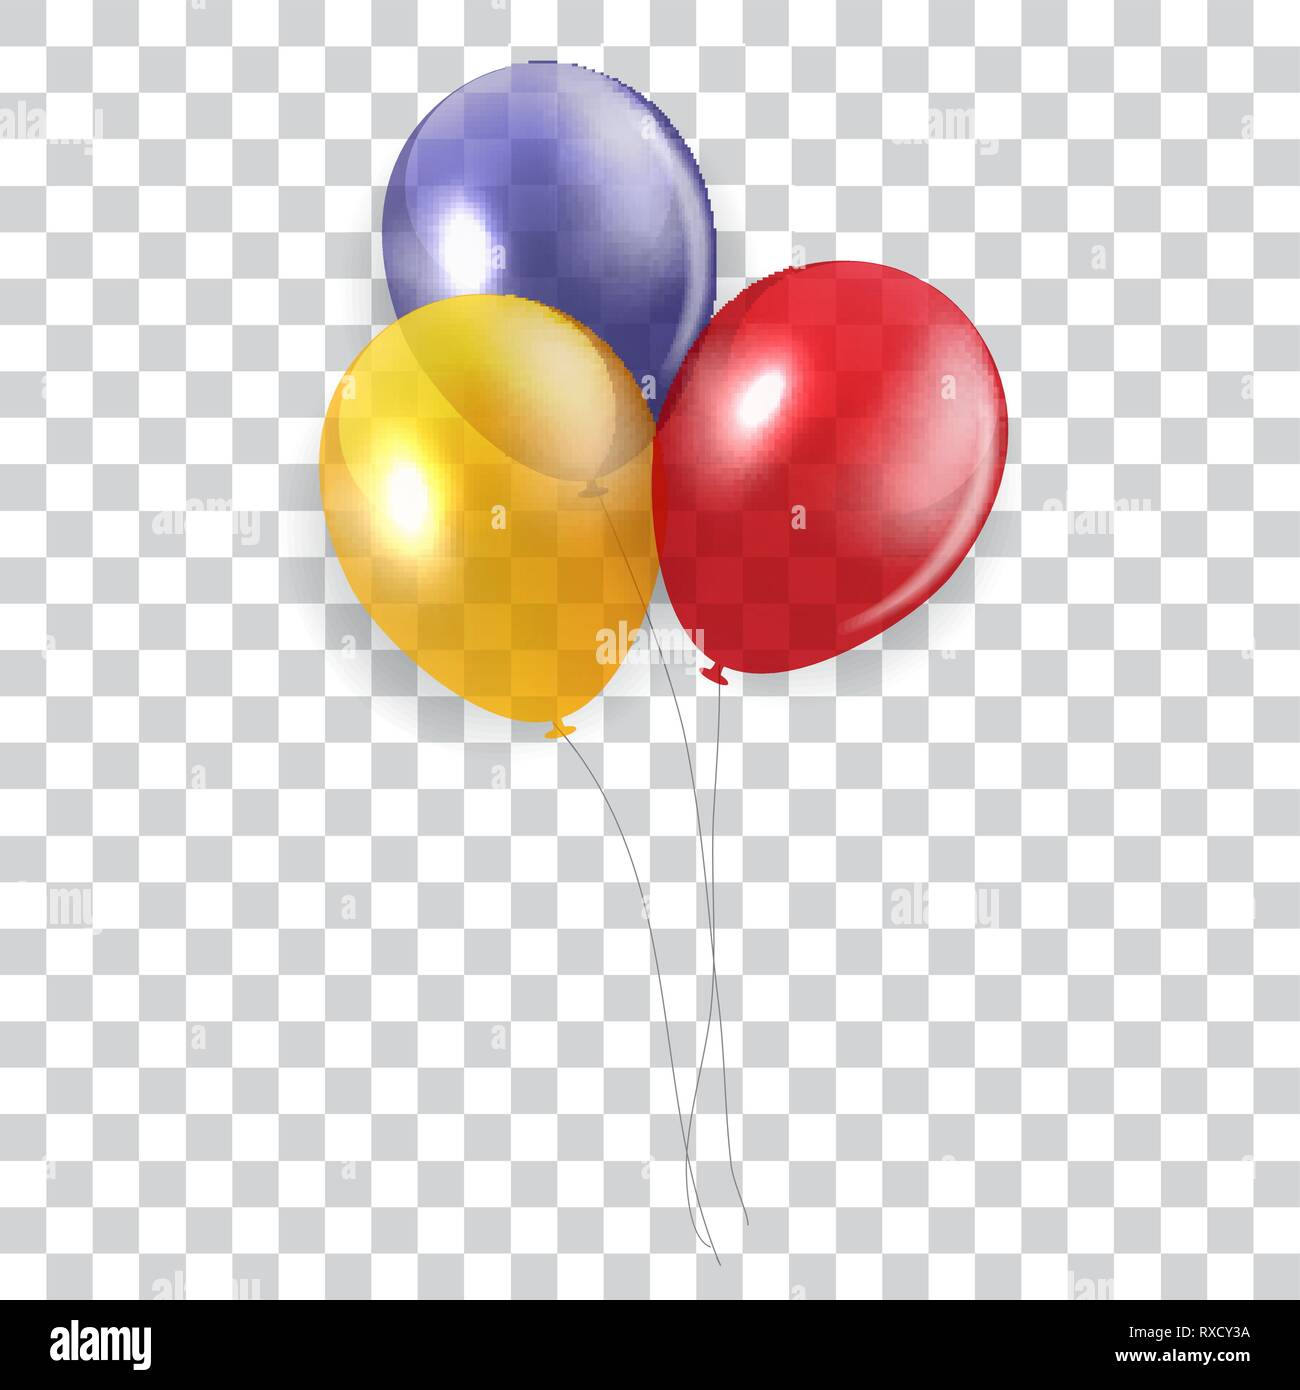 Glossy Happy Birthday Concept With Balloons Isolated On Transparent Background Vector Illustration Eps10 Stock Vector Image Art Alamy Balloons clip art transparent background. https www alamy com glossy happy birthday concept with balloons isolated on transparent background vector illustration eps10 image240000526 html